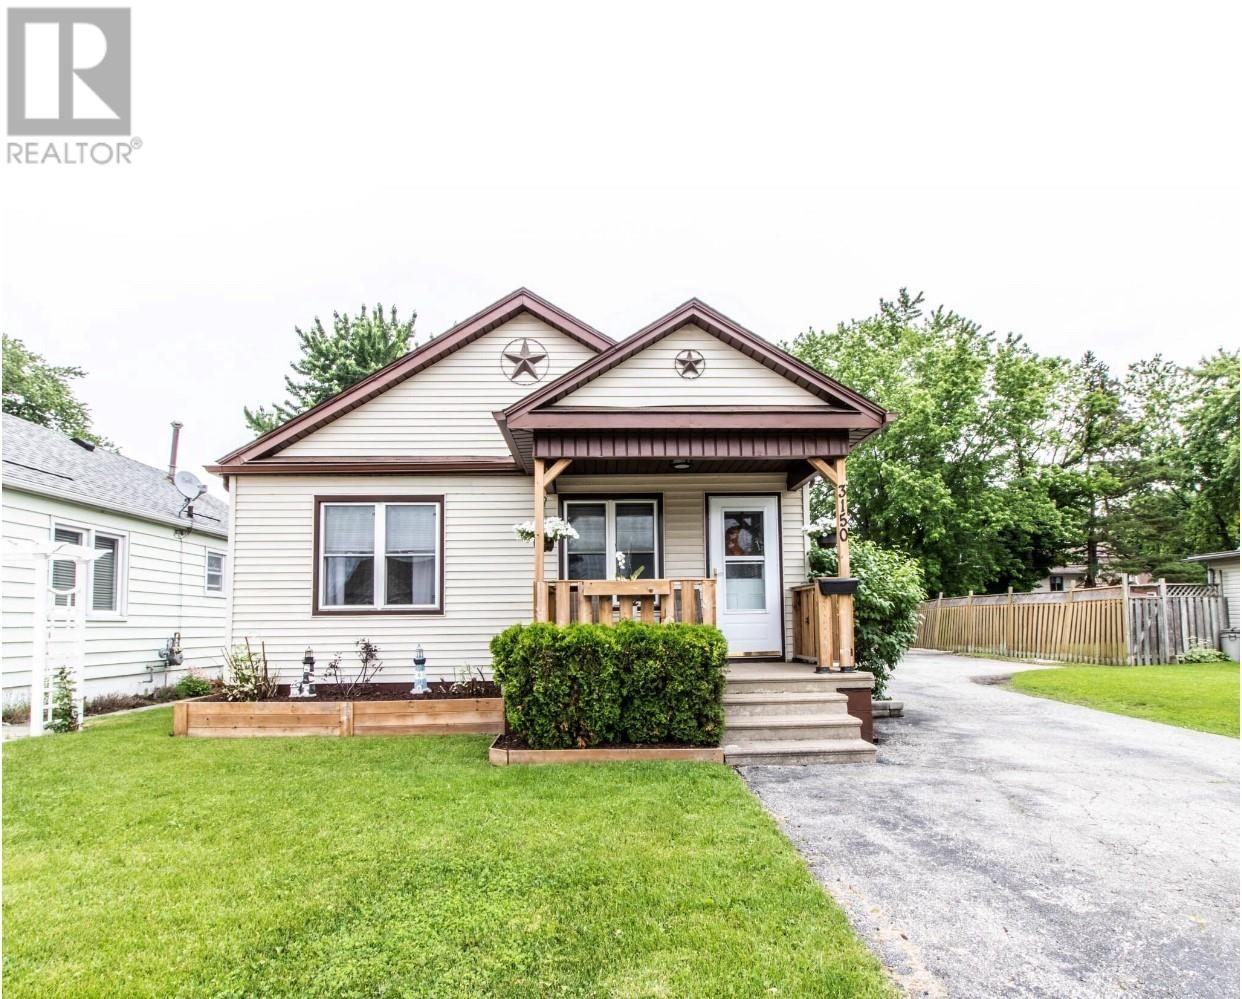 Removed: 3150 Bliss, Windsor, ON - Removed on 2019-06-26 05:57:17